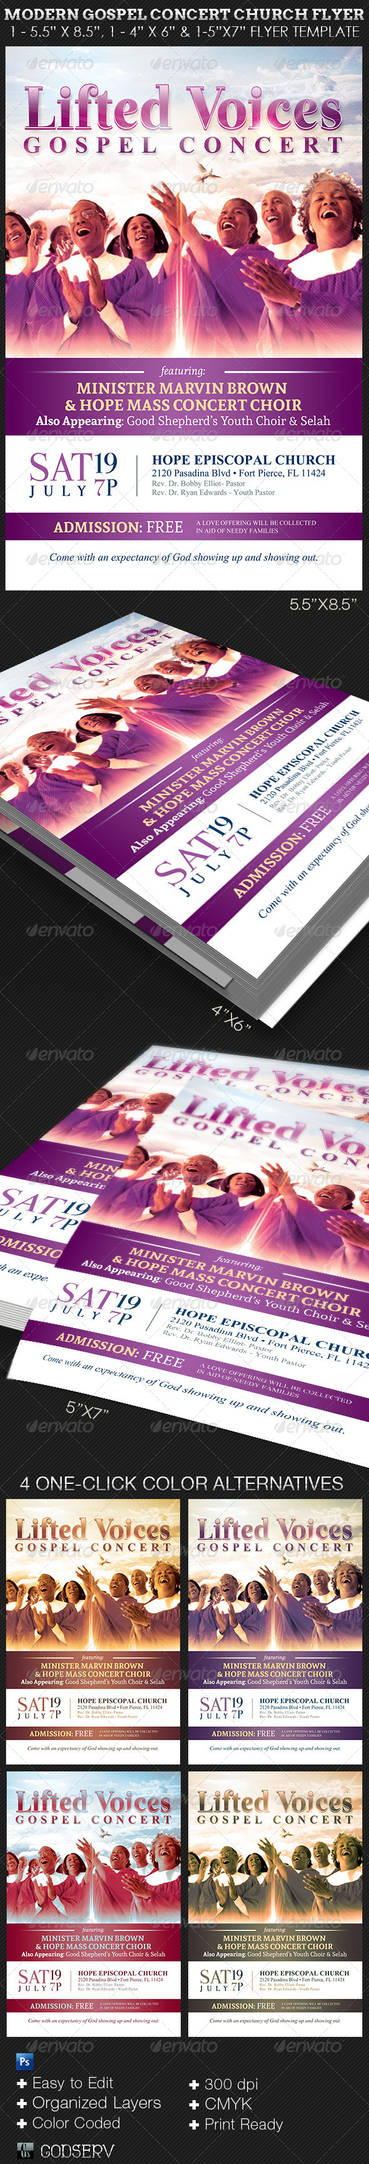 Modern Gospel Concert Church Flyer Template